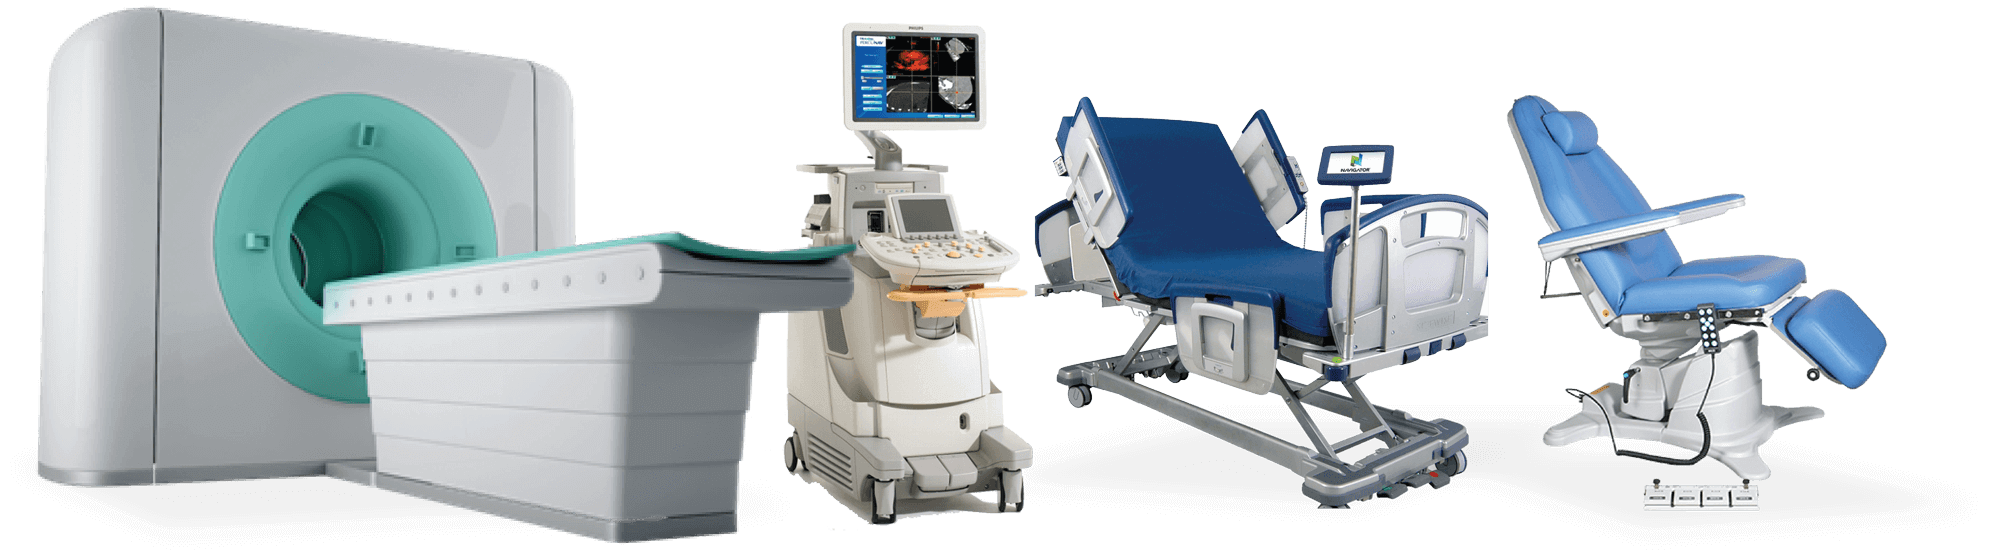 Certified Medical Equipments TGOHN Englewood, FL